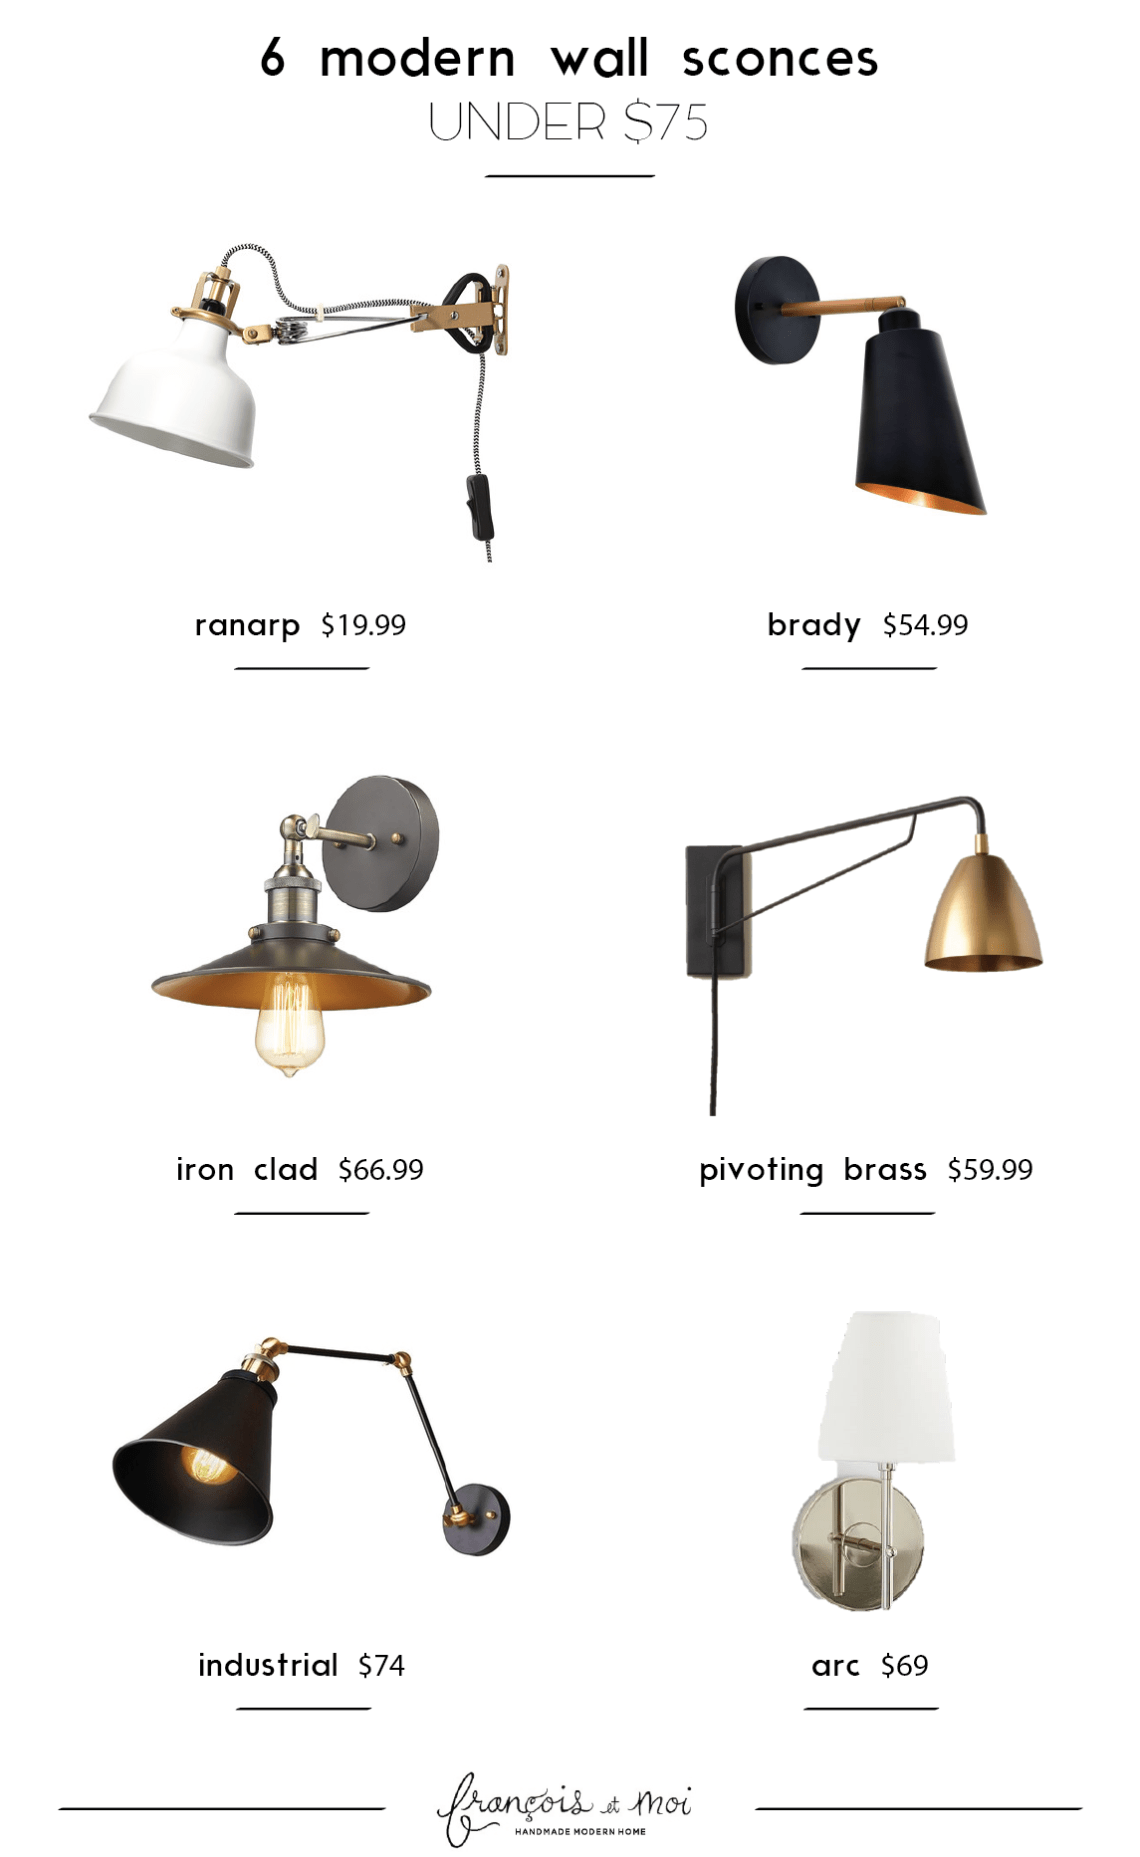 6 smart modern wall sconces that are affordable (under $75!) too!